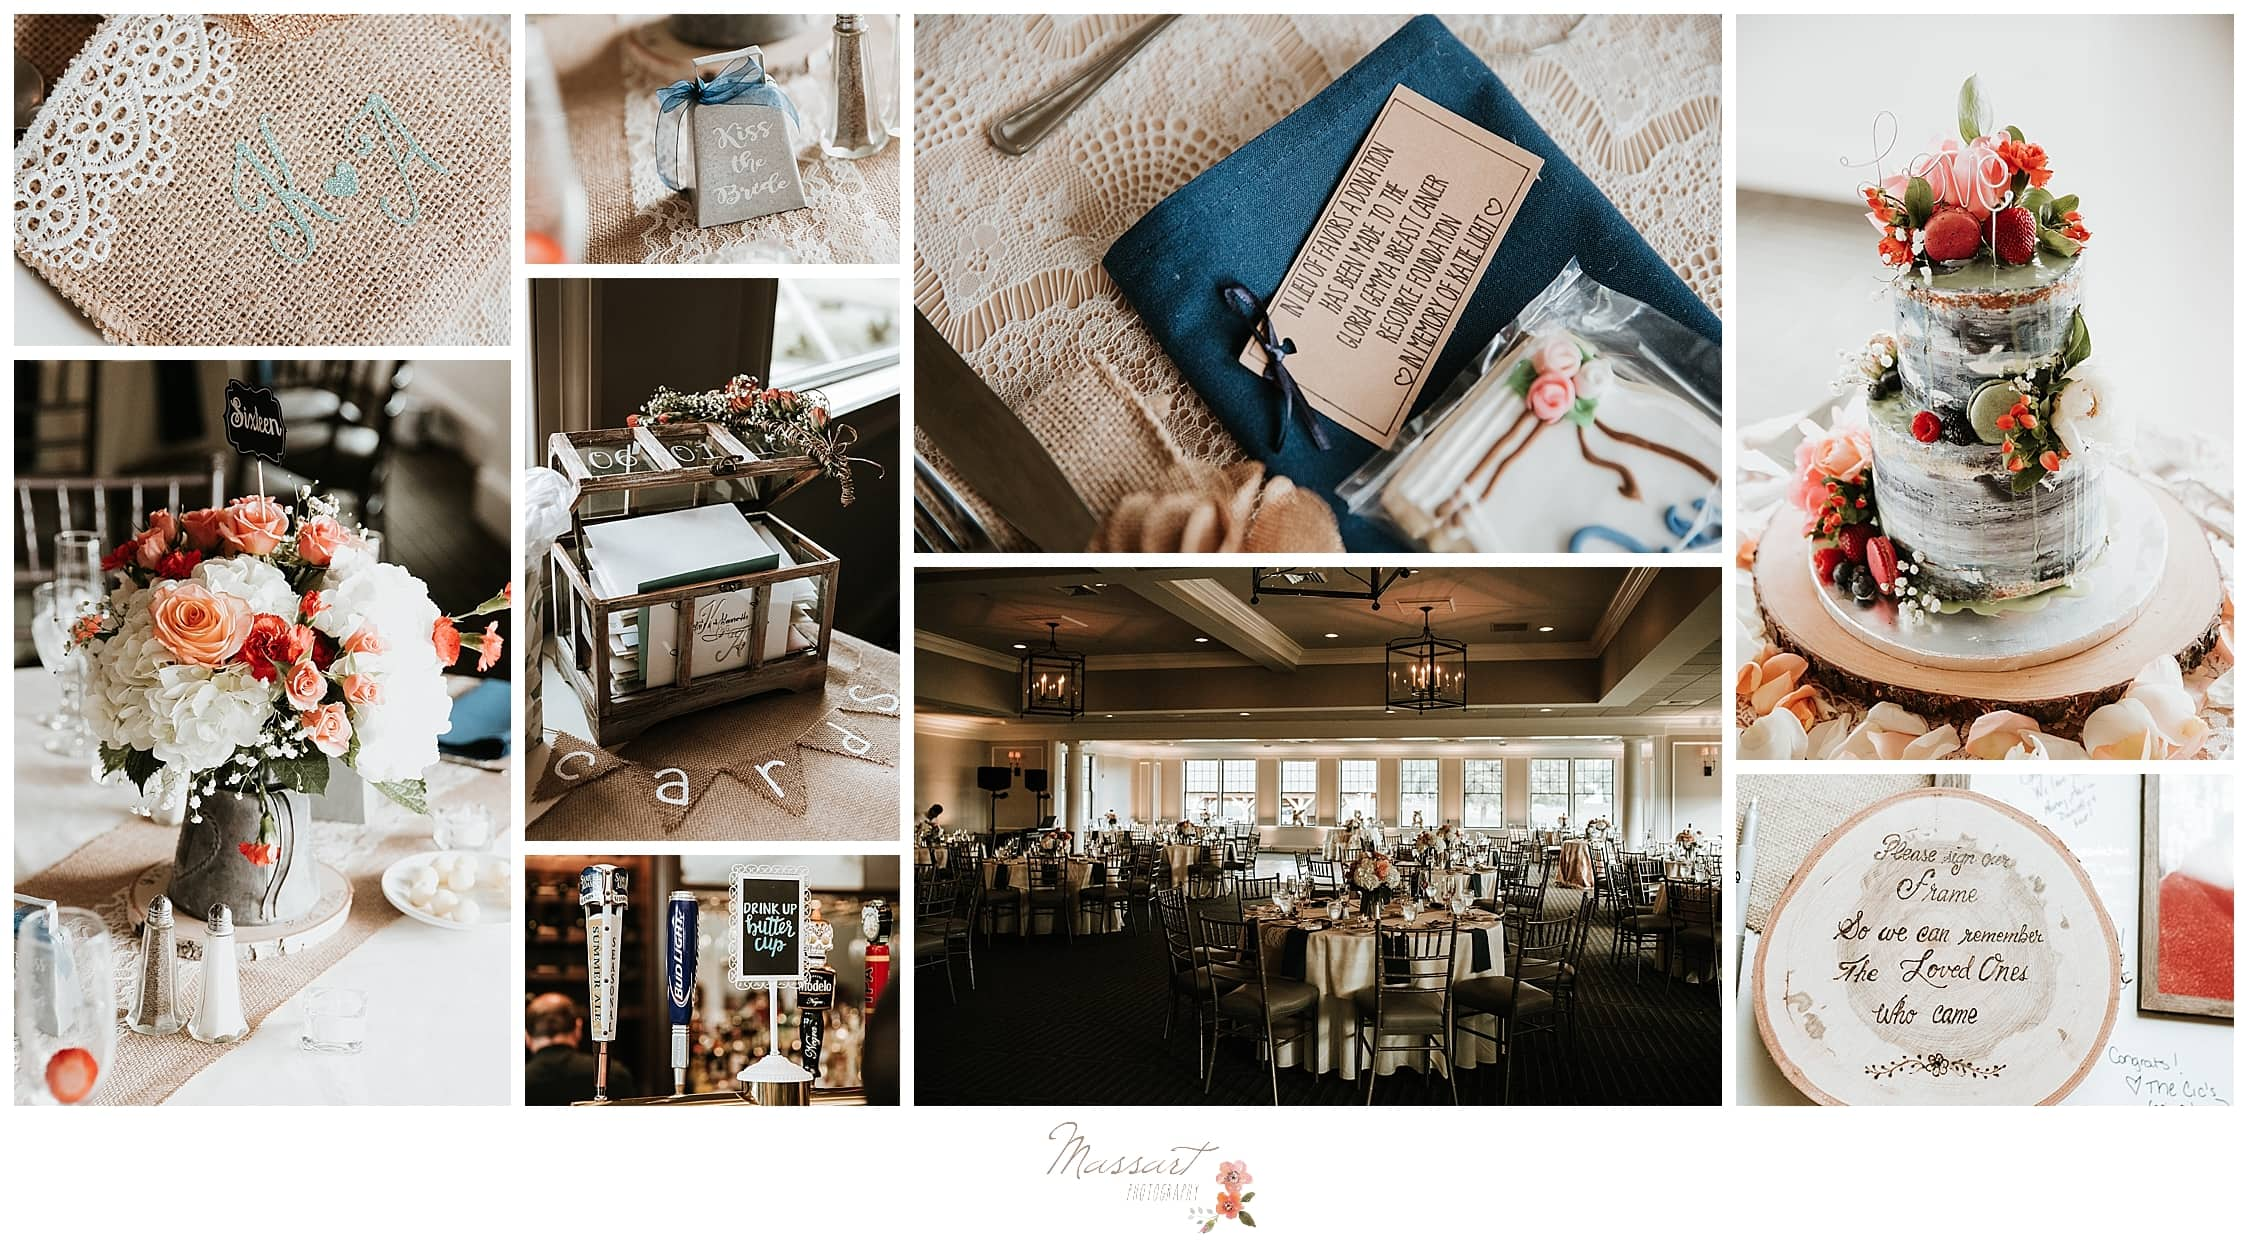 Navy and coral wedding reception details for summer wedding at Harbor Lights by RI wedding photographers Massart Photography